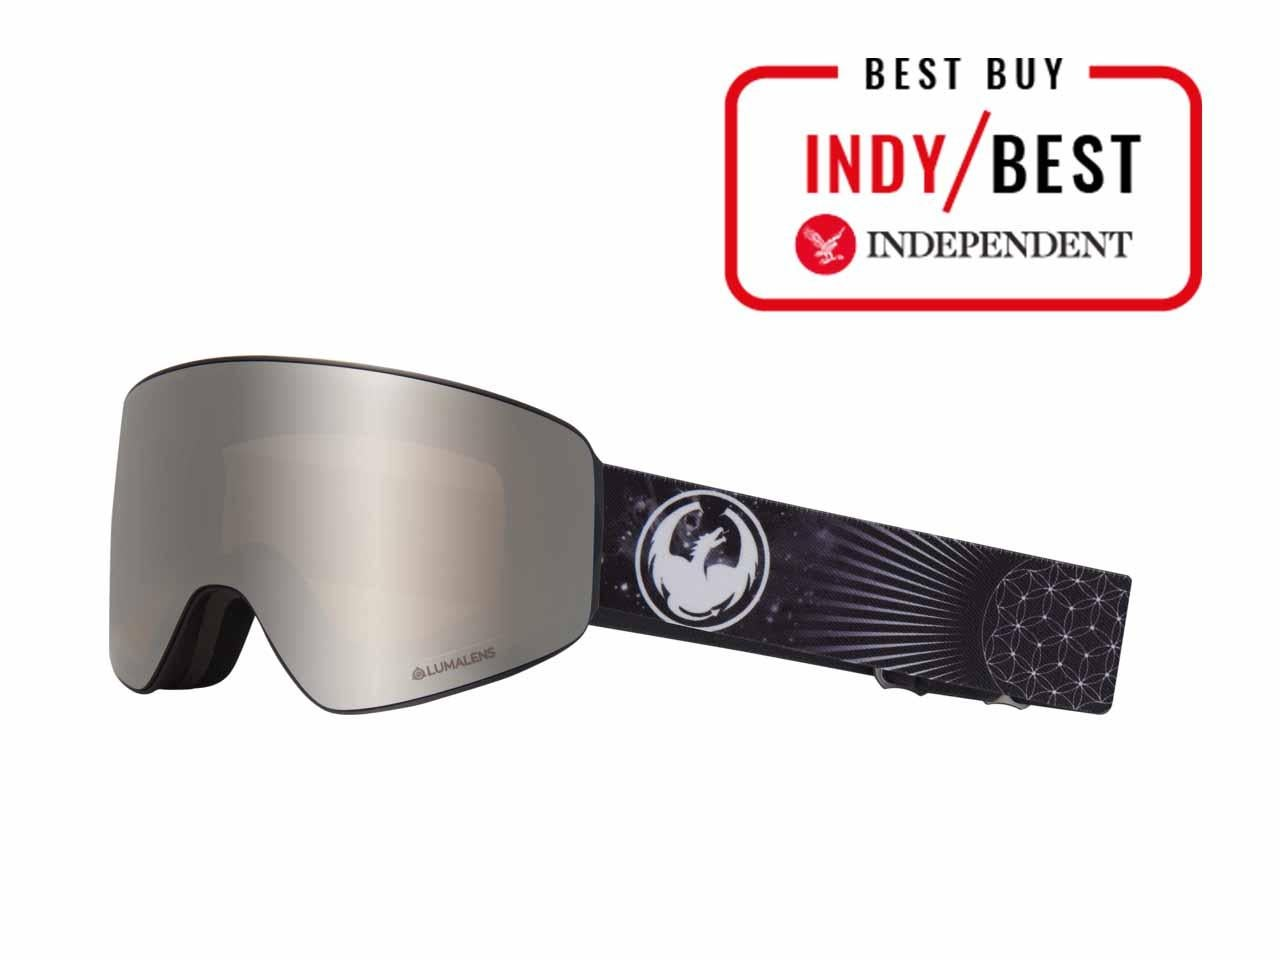 8 best ski and snowboard goggles | The Independent